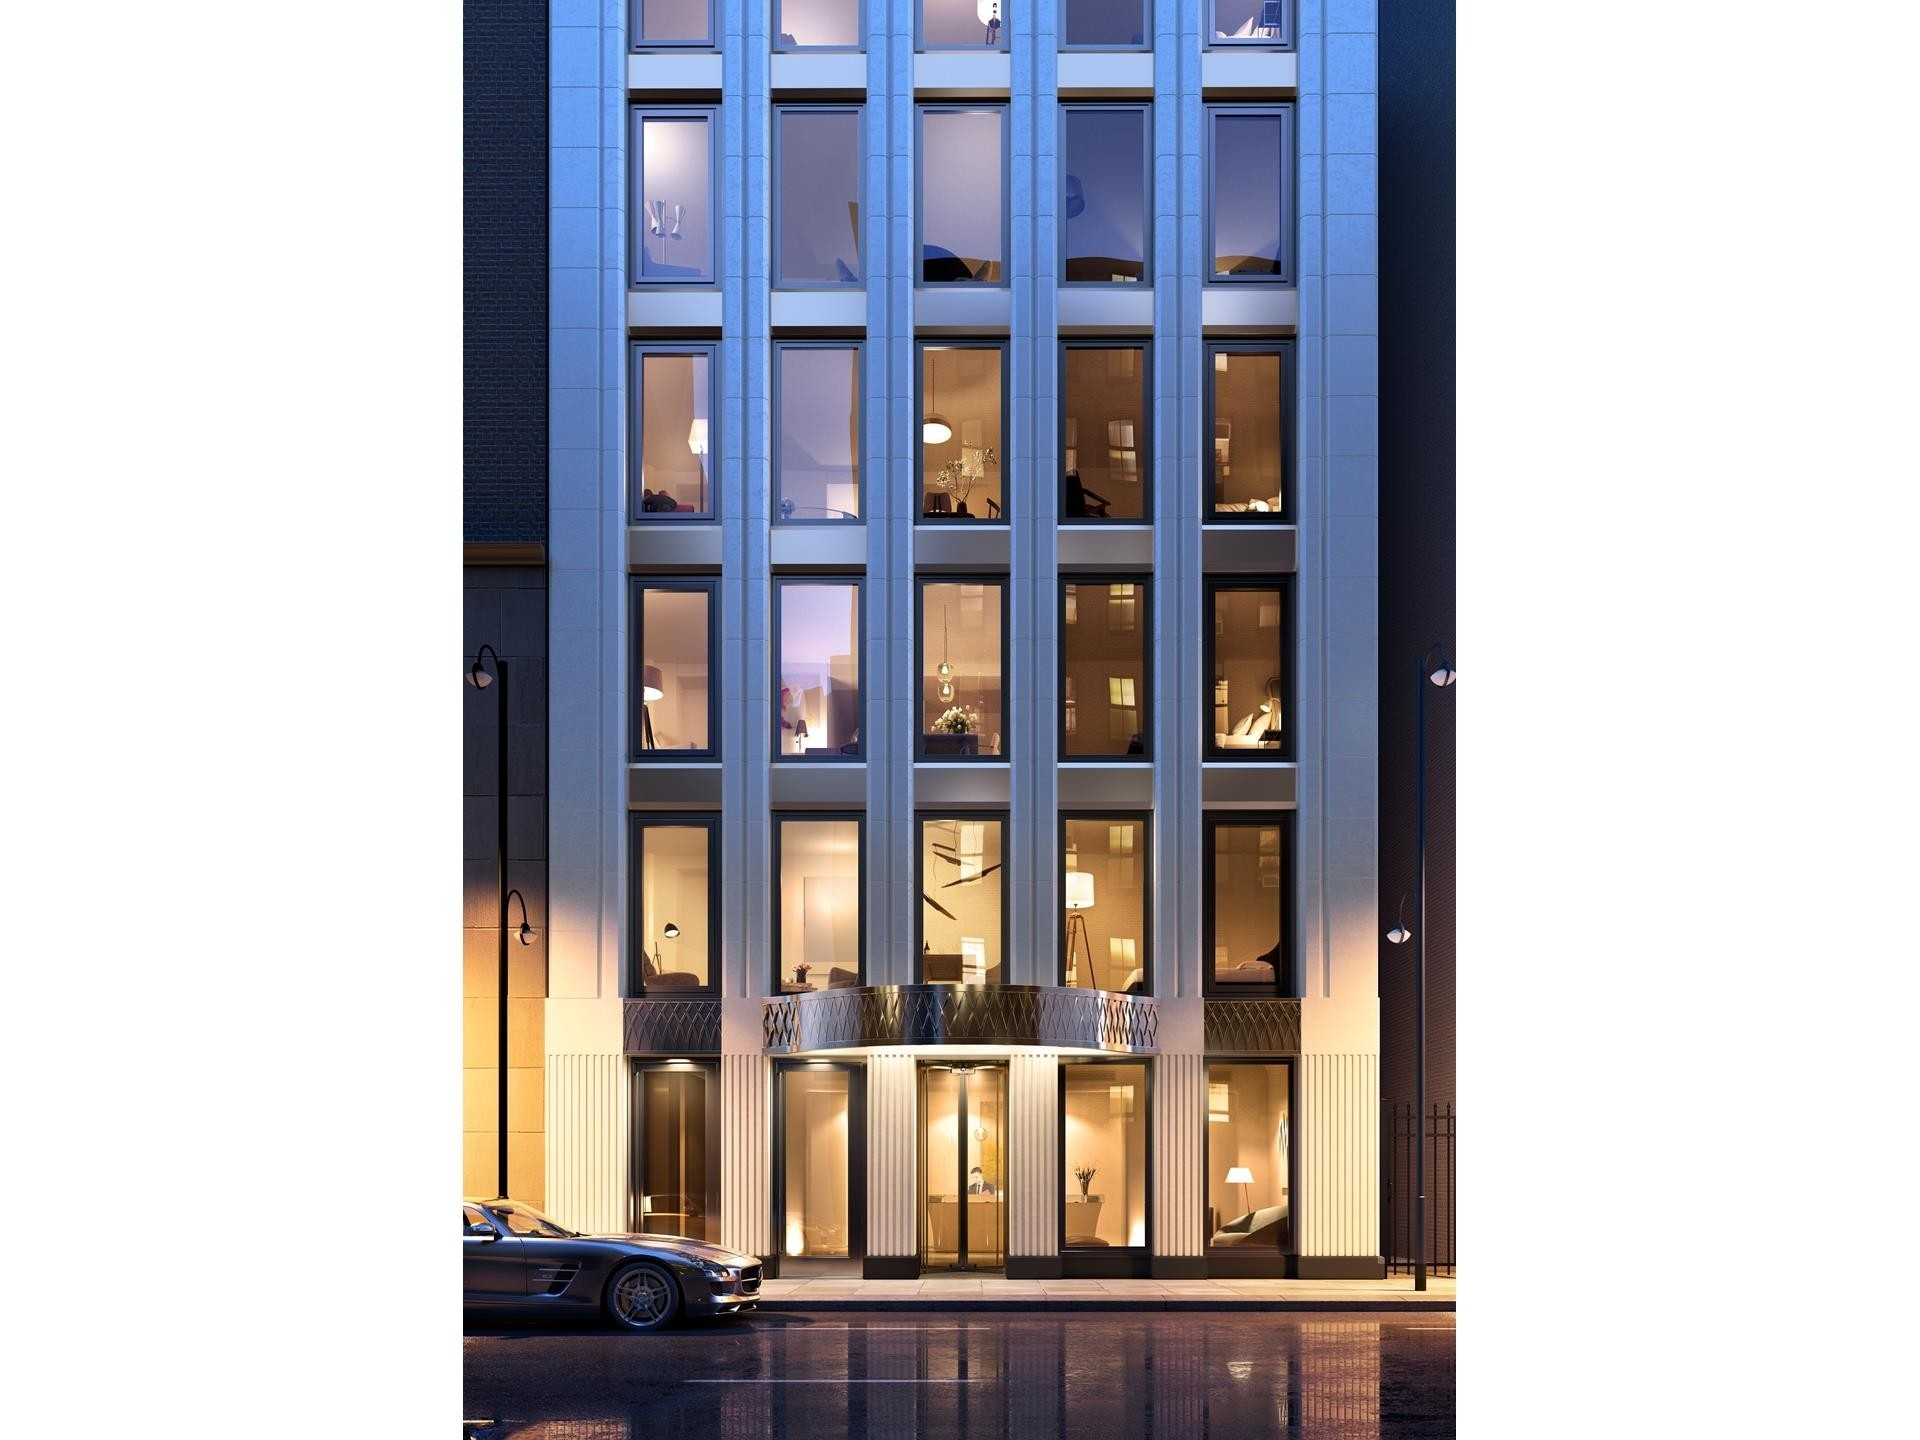 Property en 30 East 31st St, 38 NoMad, New York, NY 10016